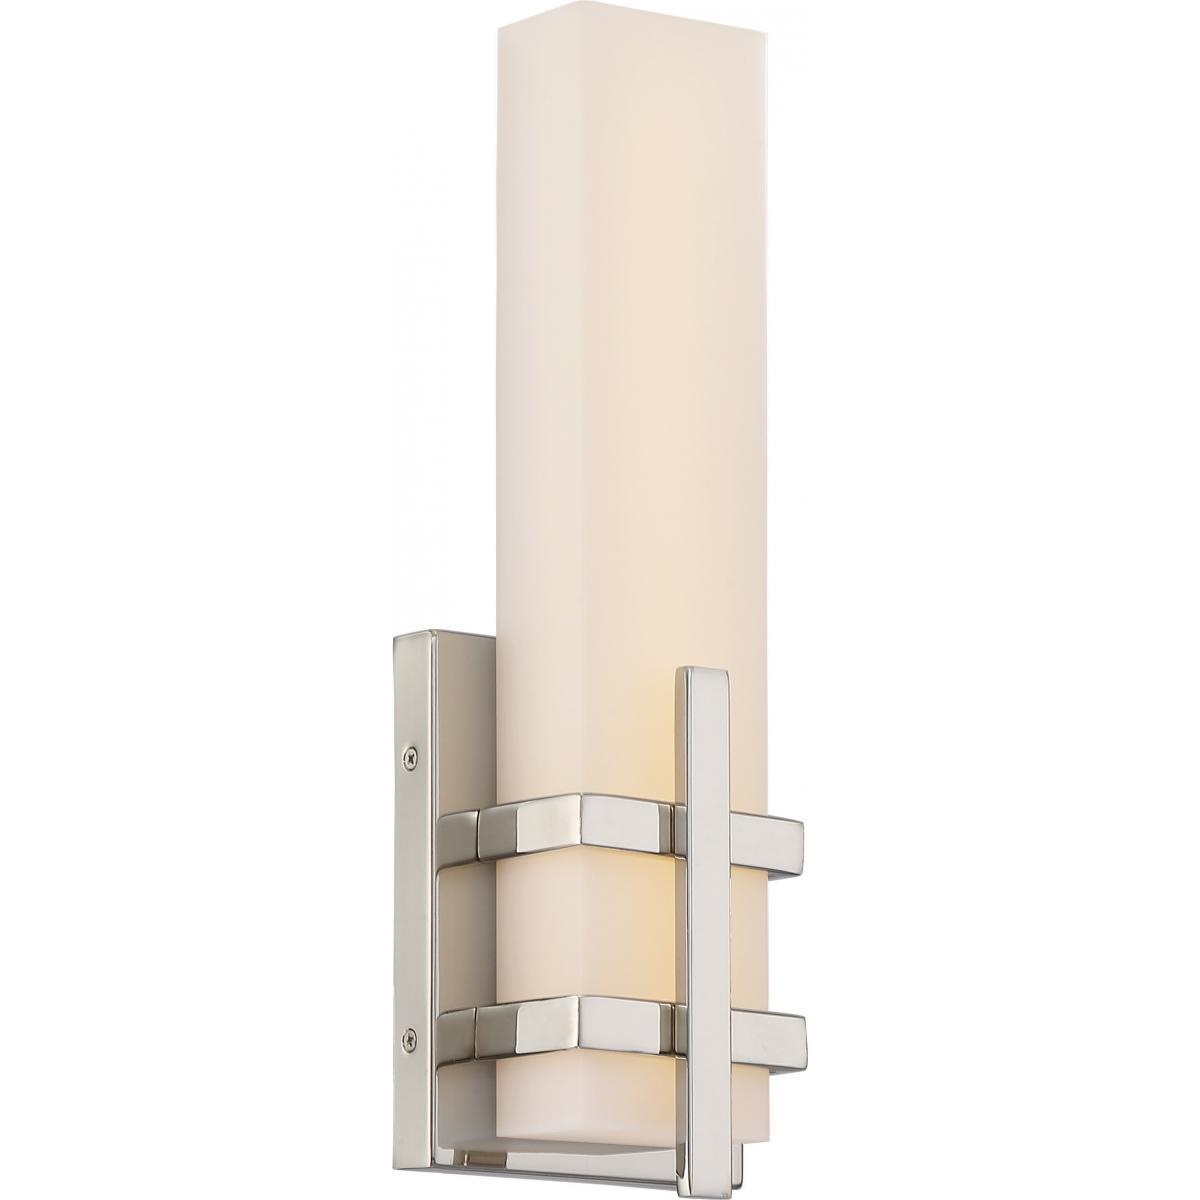 Grill Single LED Wall Sconce Polished Nickel Finish Wall Nuvo Lighting